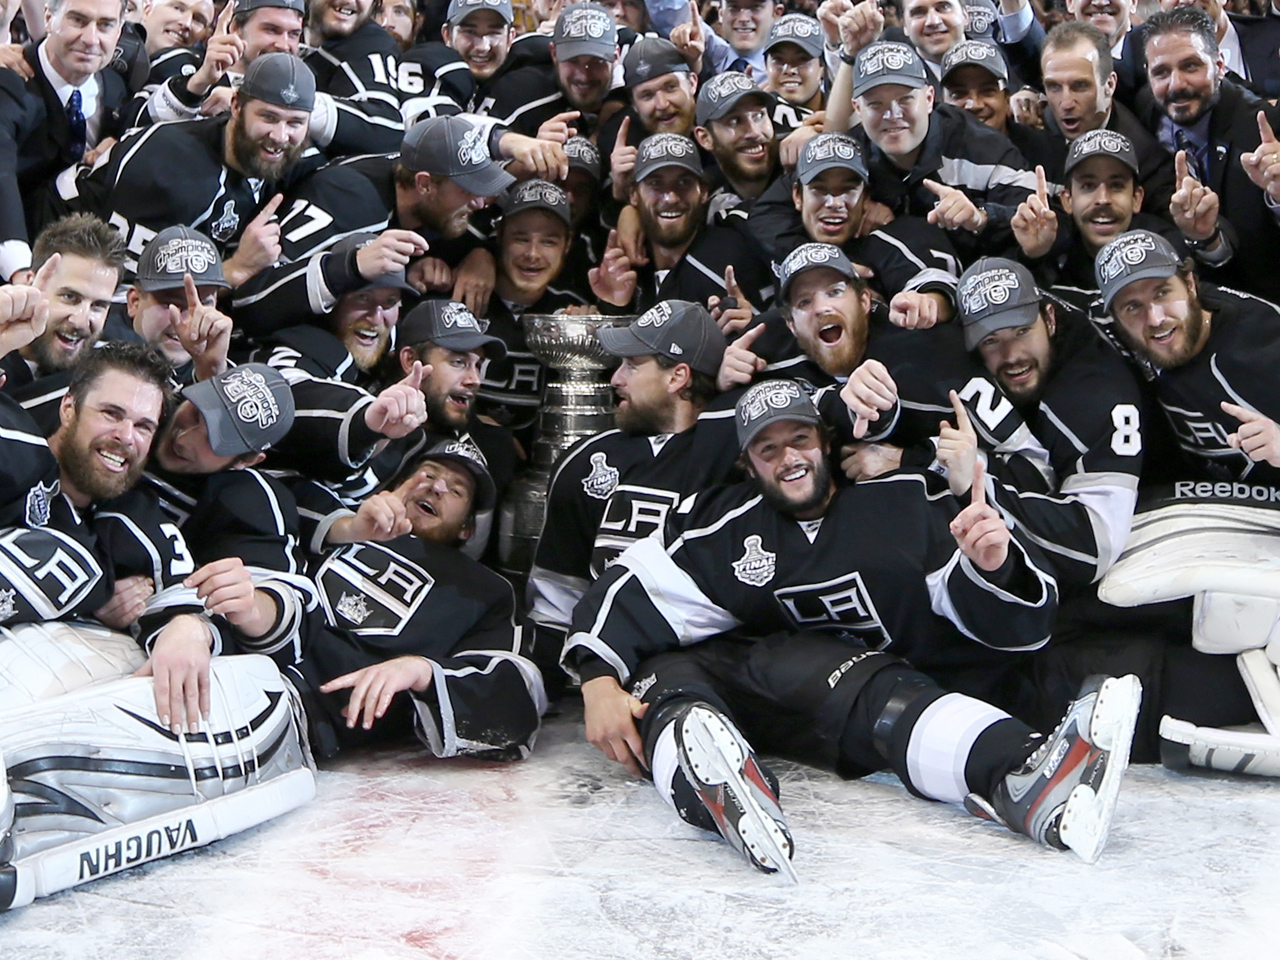 d057bc49a11 L.A. Kings win their first Stanley Cup - CBS News